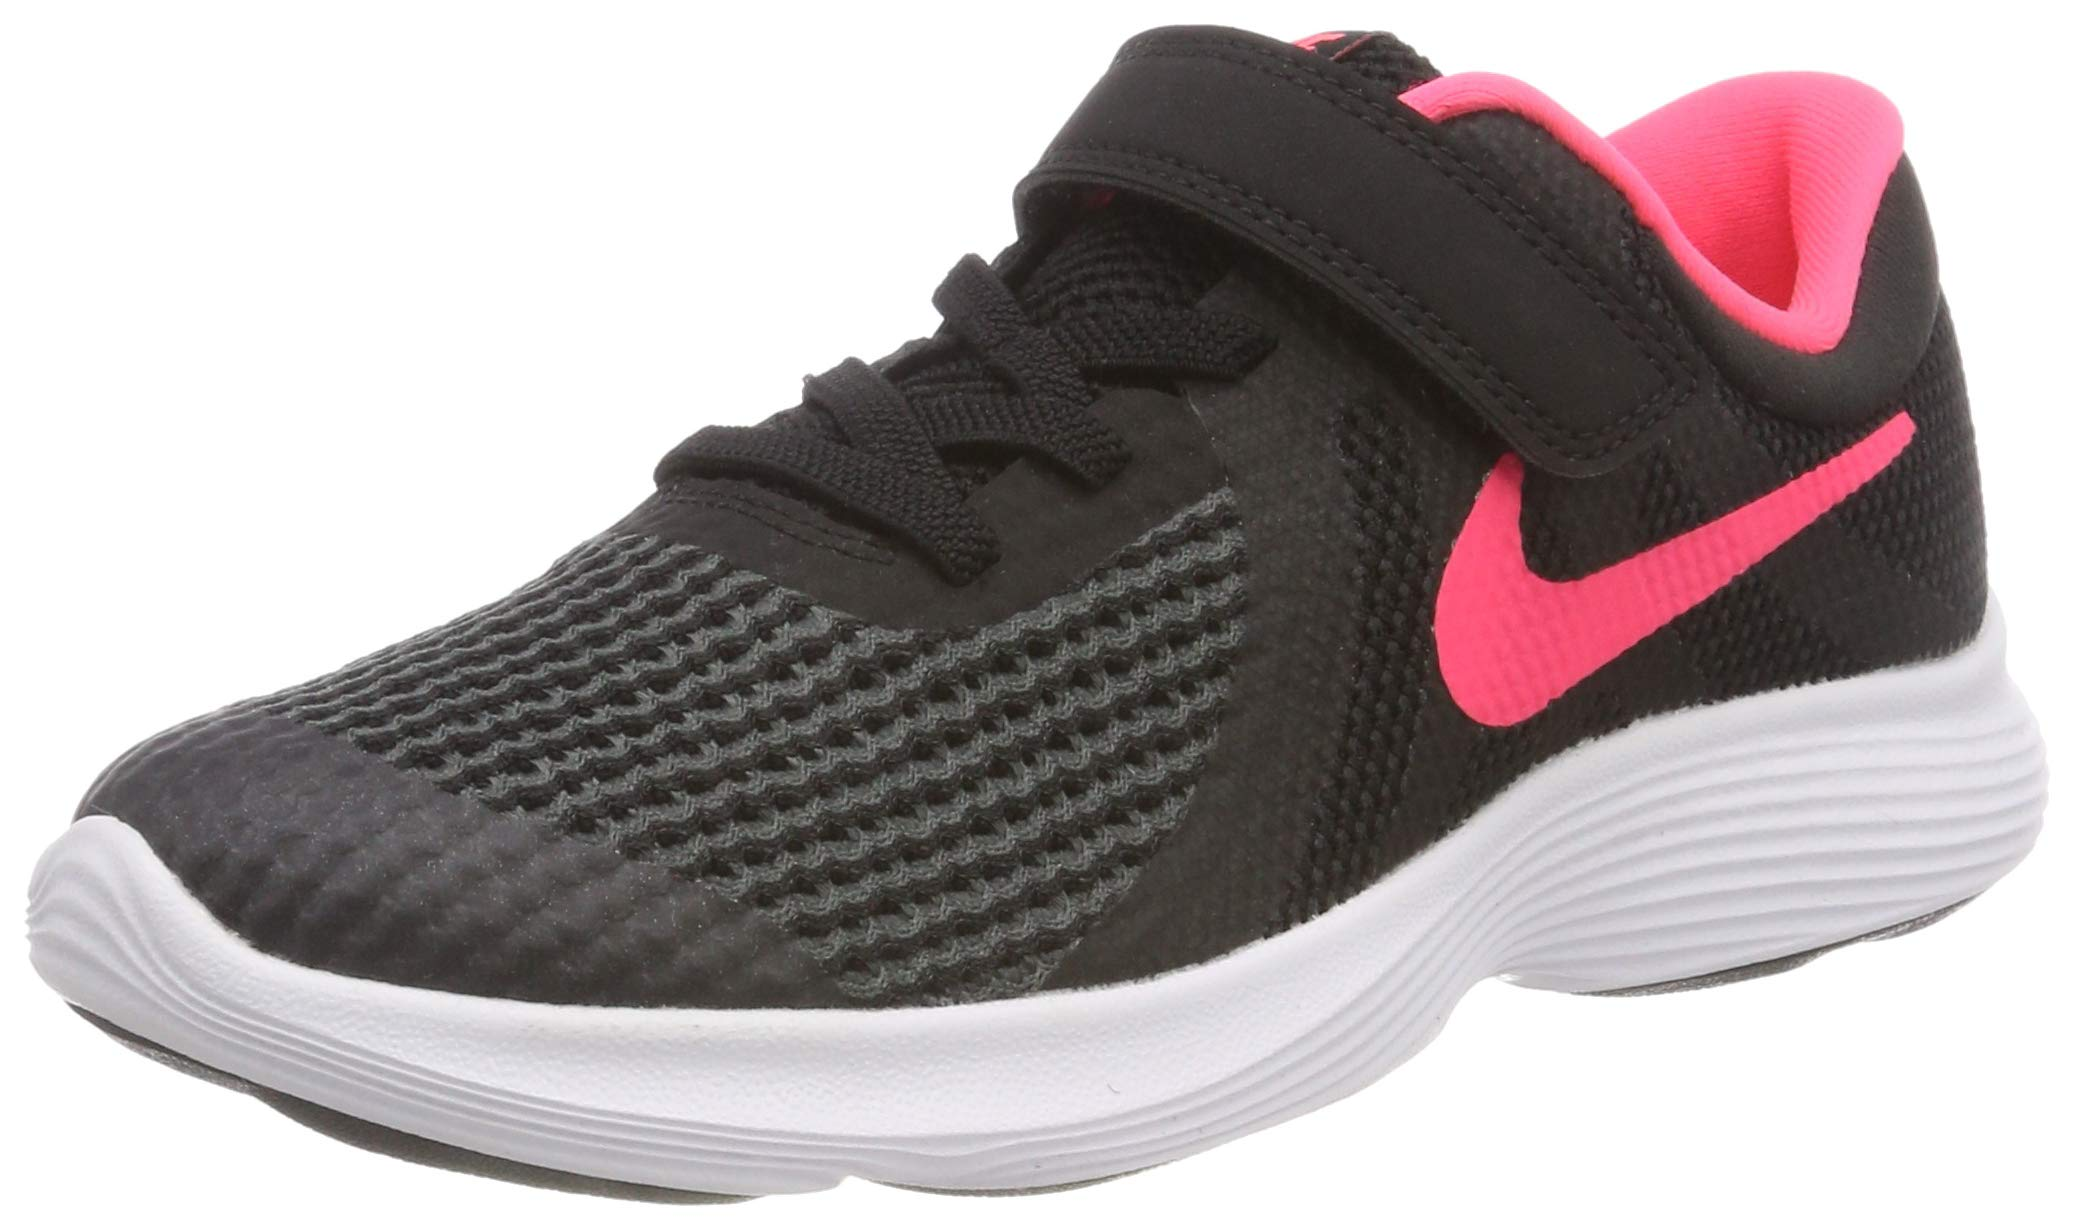 Nike Girls' Revolution 4 (PSV) Running Shoe, Black/Racer Pink - White, 11.5C Regular US Little Kid by Nike